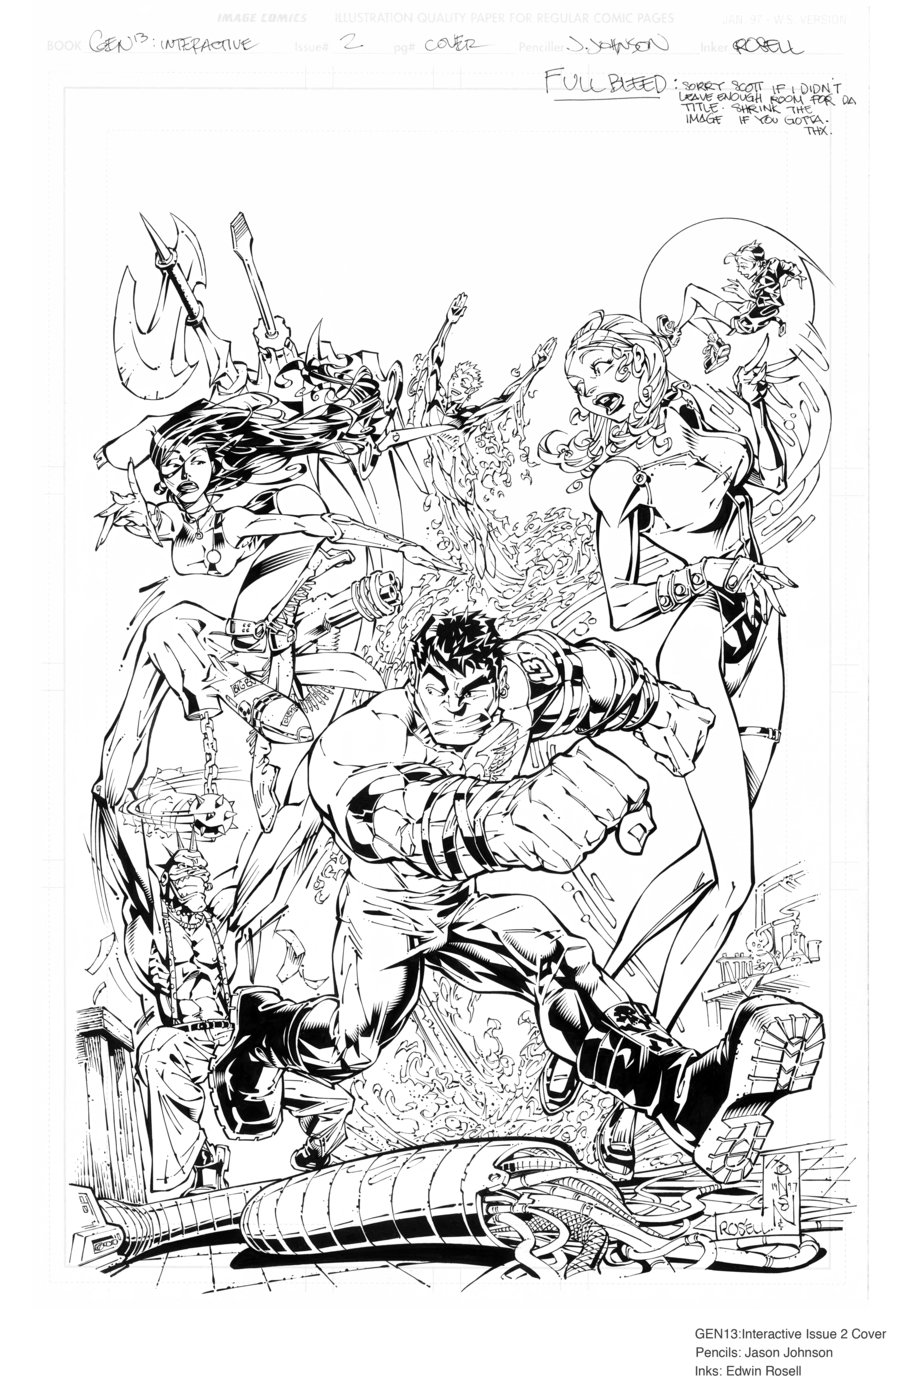 gen13_interactive_inks_by_erosell-d4mg3e2-jan-15-2012